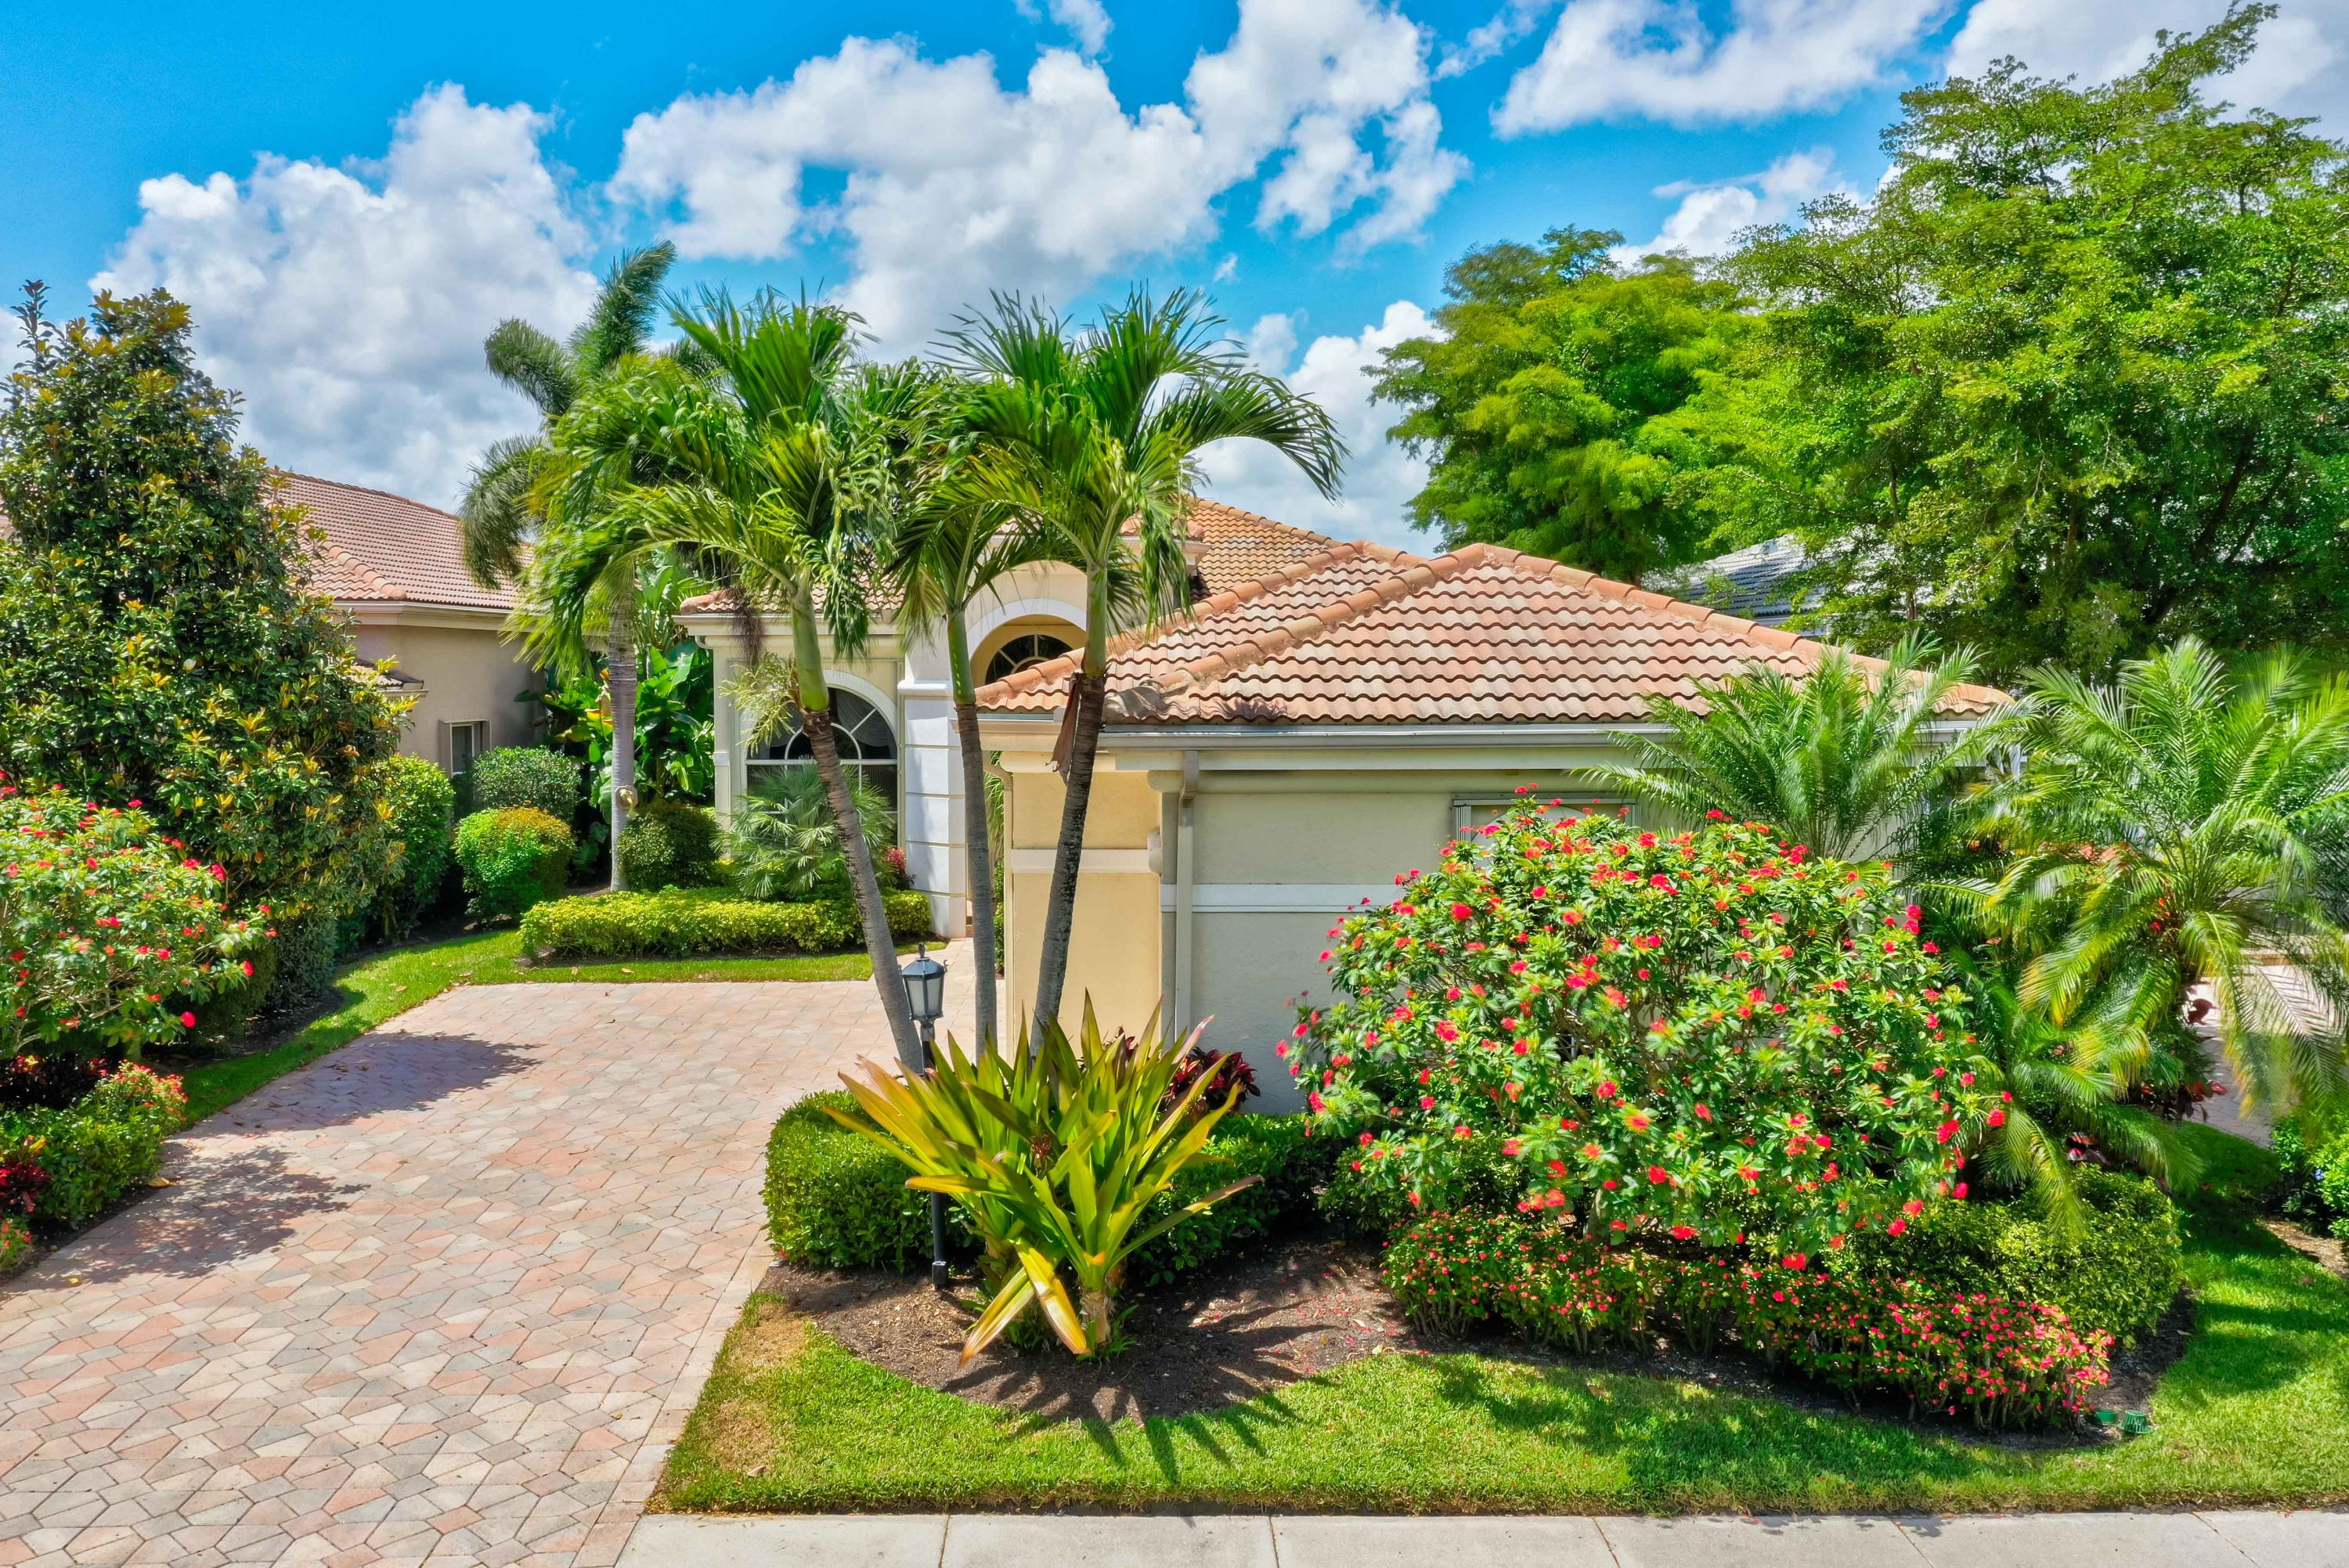 Home for sale in Cayman Isle Palm Beach Gardens Florida